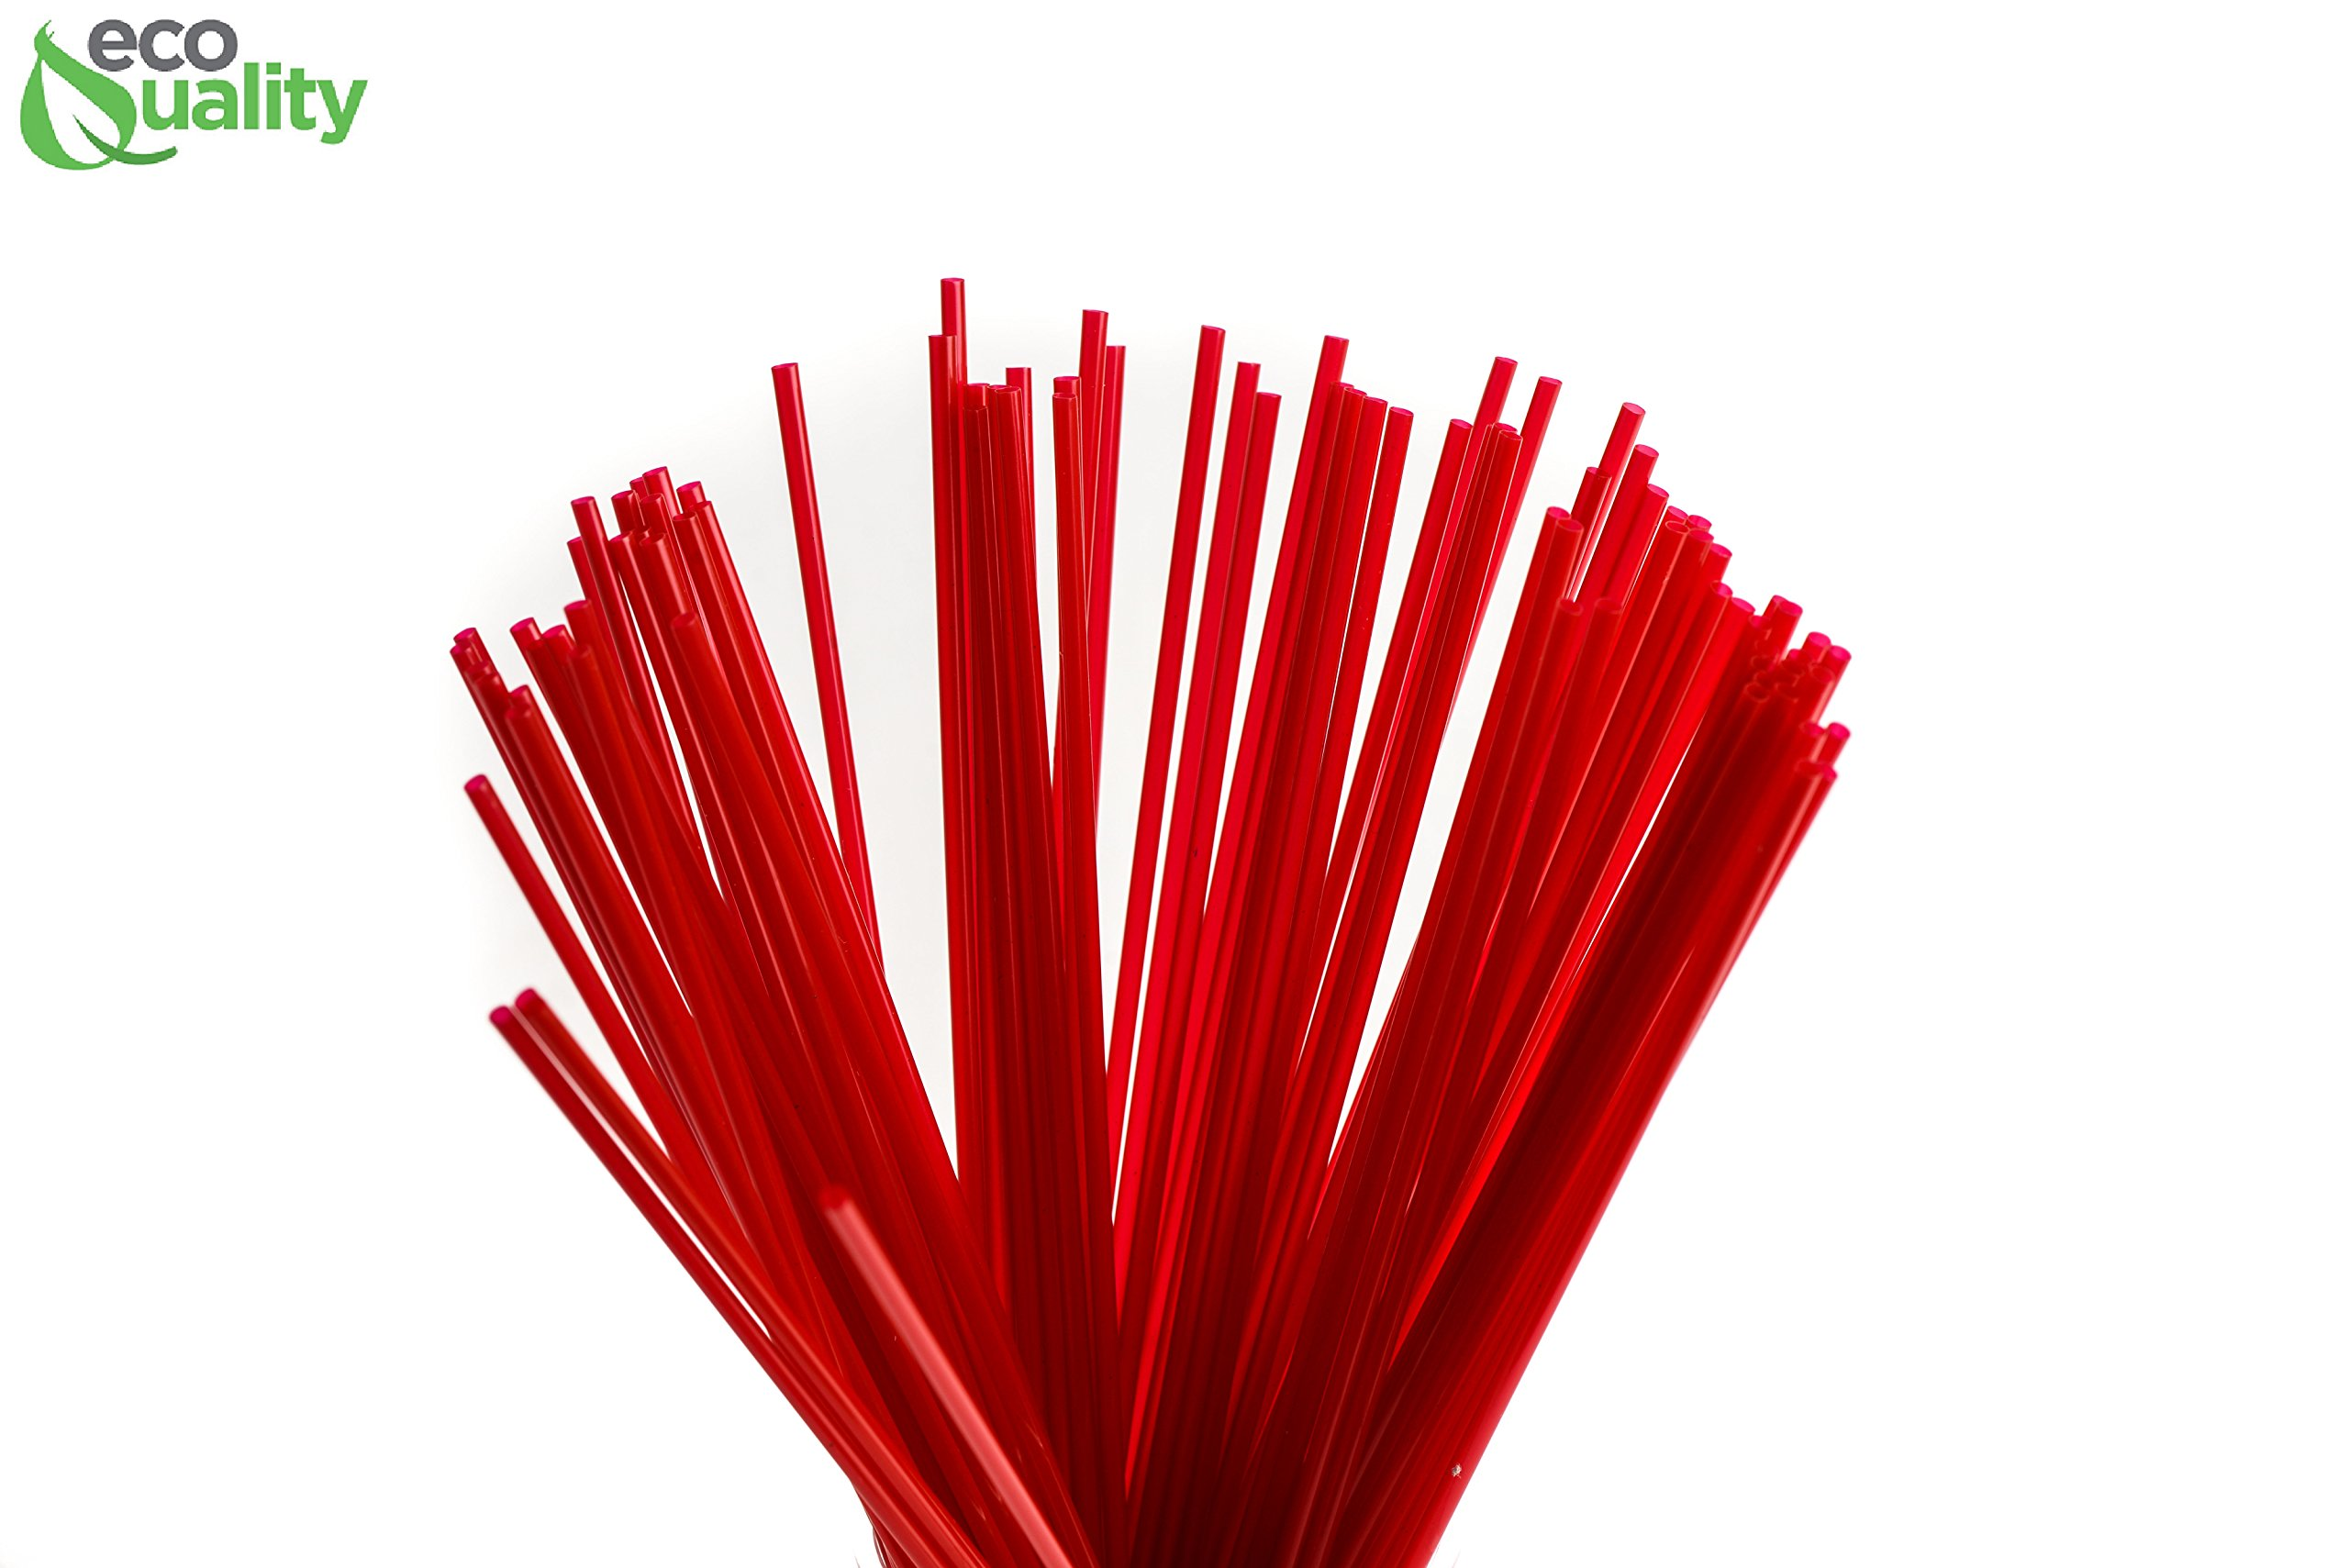 3000 Count Plastic Stirrer 8inch, Sip Stirrer, Sip Straw, For Coffee, Cocktail, Latte and Tea - 8 Inches, 3000/Box, Red